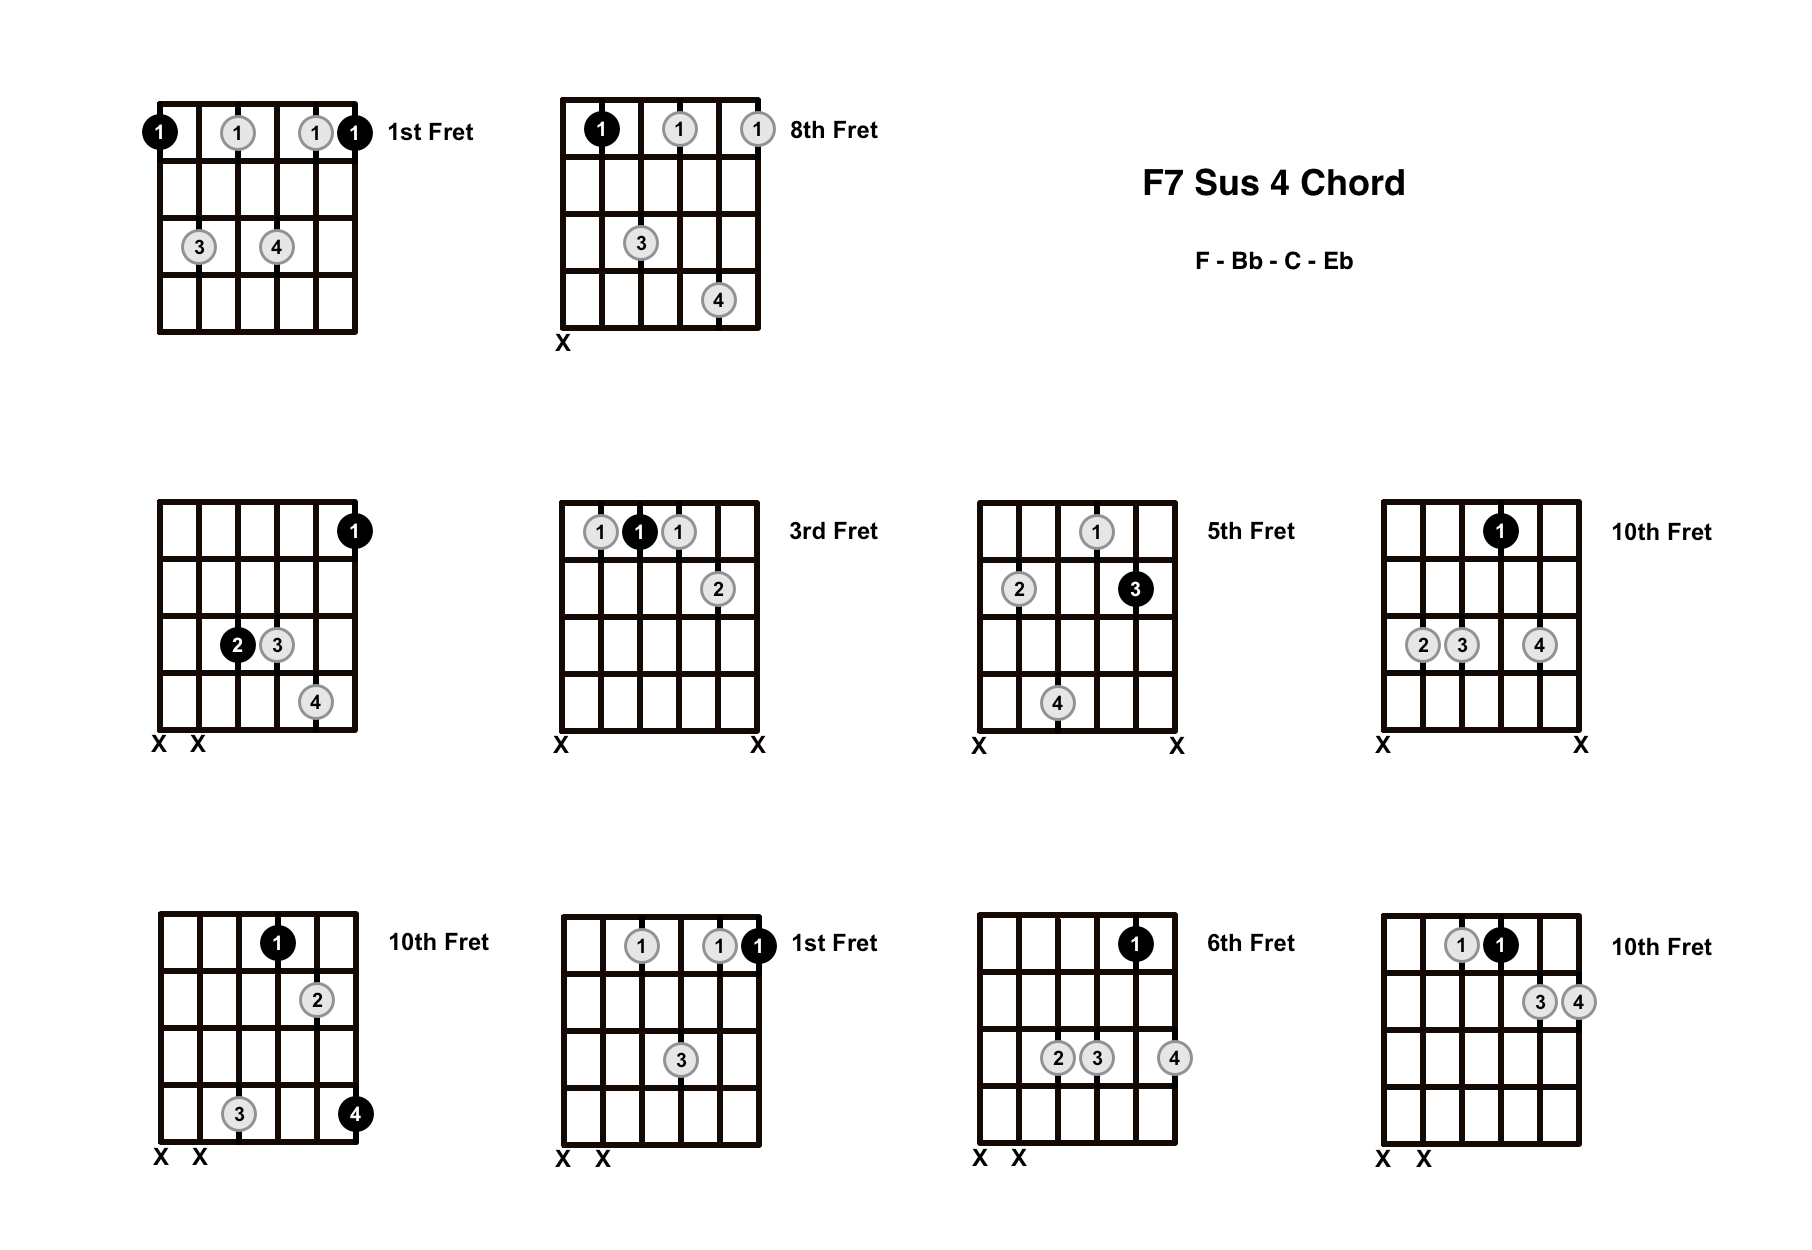 F7 Sus 4 Chord On The Guitar (F7 Suspended 4) – Diagrams, Finger Positions and Theory